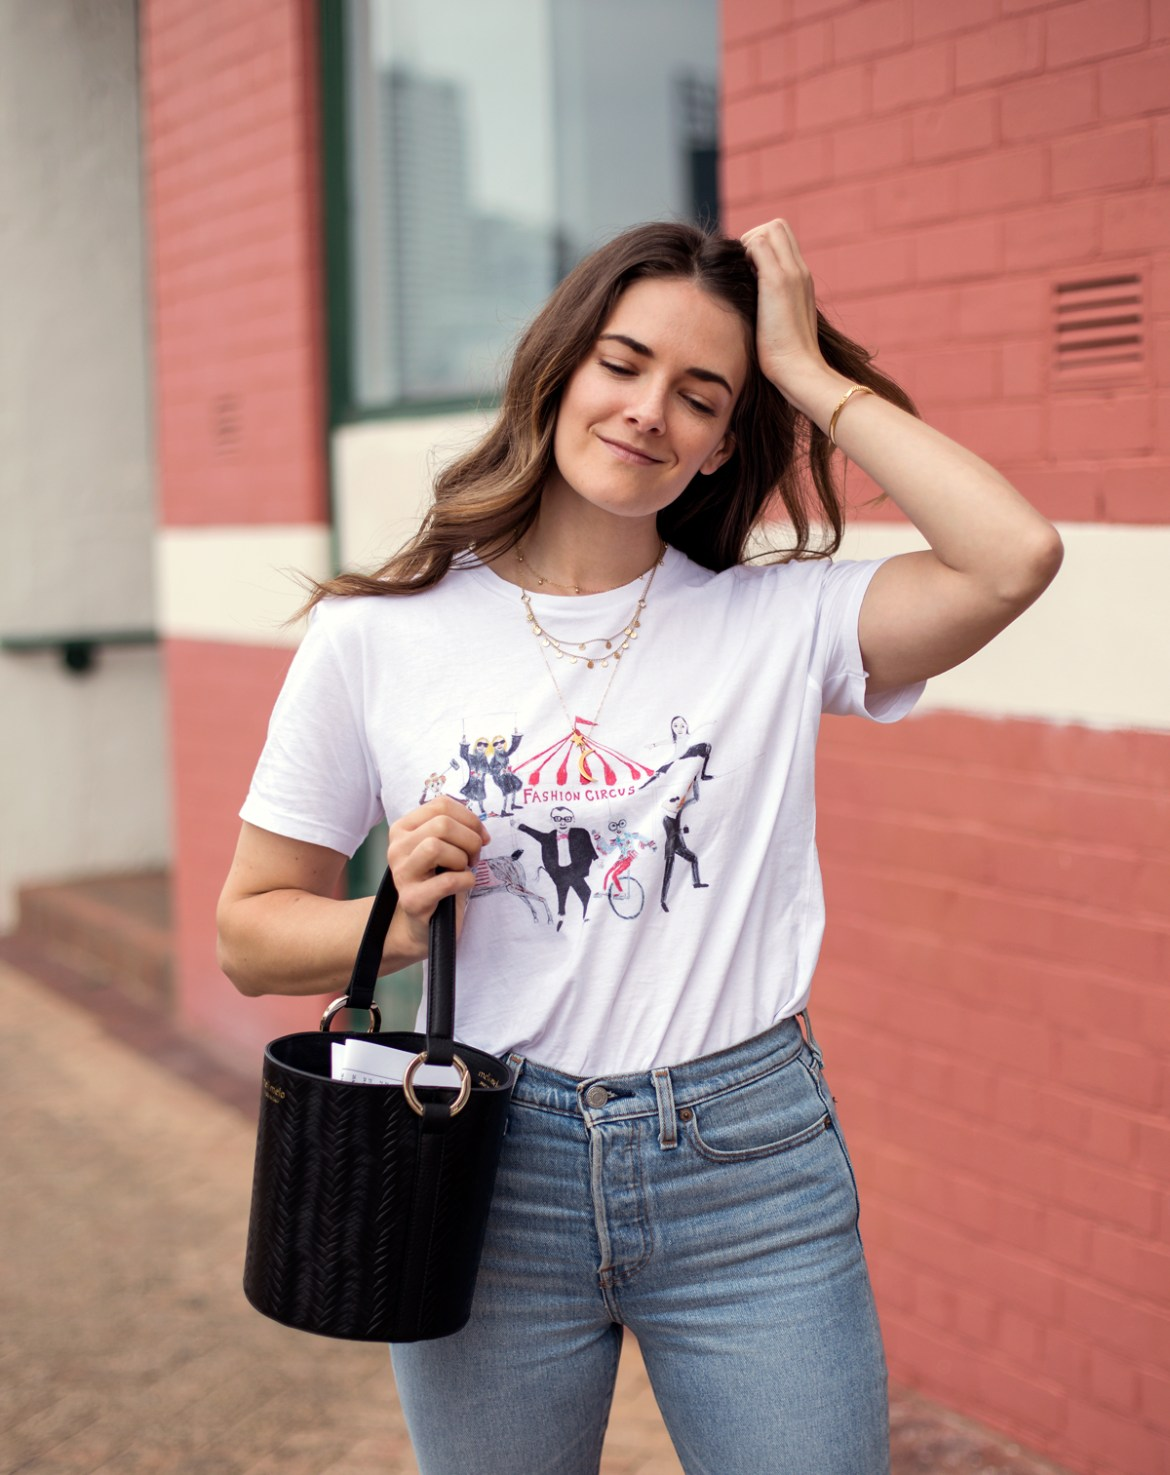 Meli Melo Santina bucket bag in black worn by fashion blogger Jenelle Witty from Inspiring Wit. With Unfortunate Portrait graphic tee, Levi's Wedgie jeans from Shopbop and Astley Clarke gold Mille Bangle